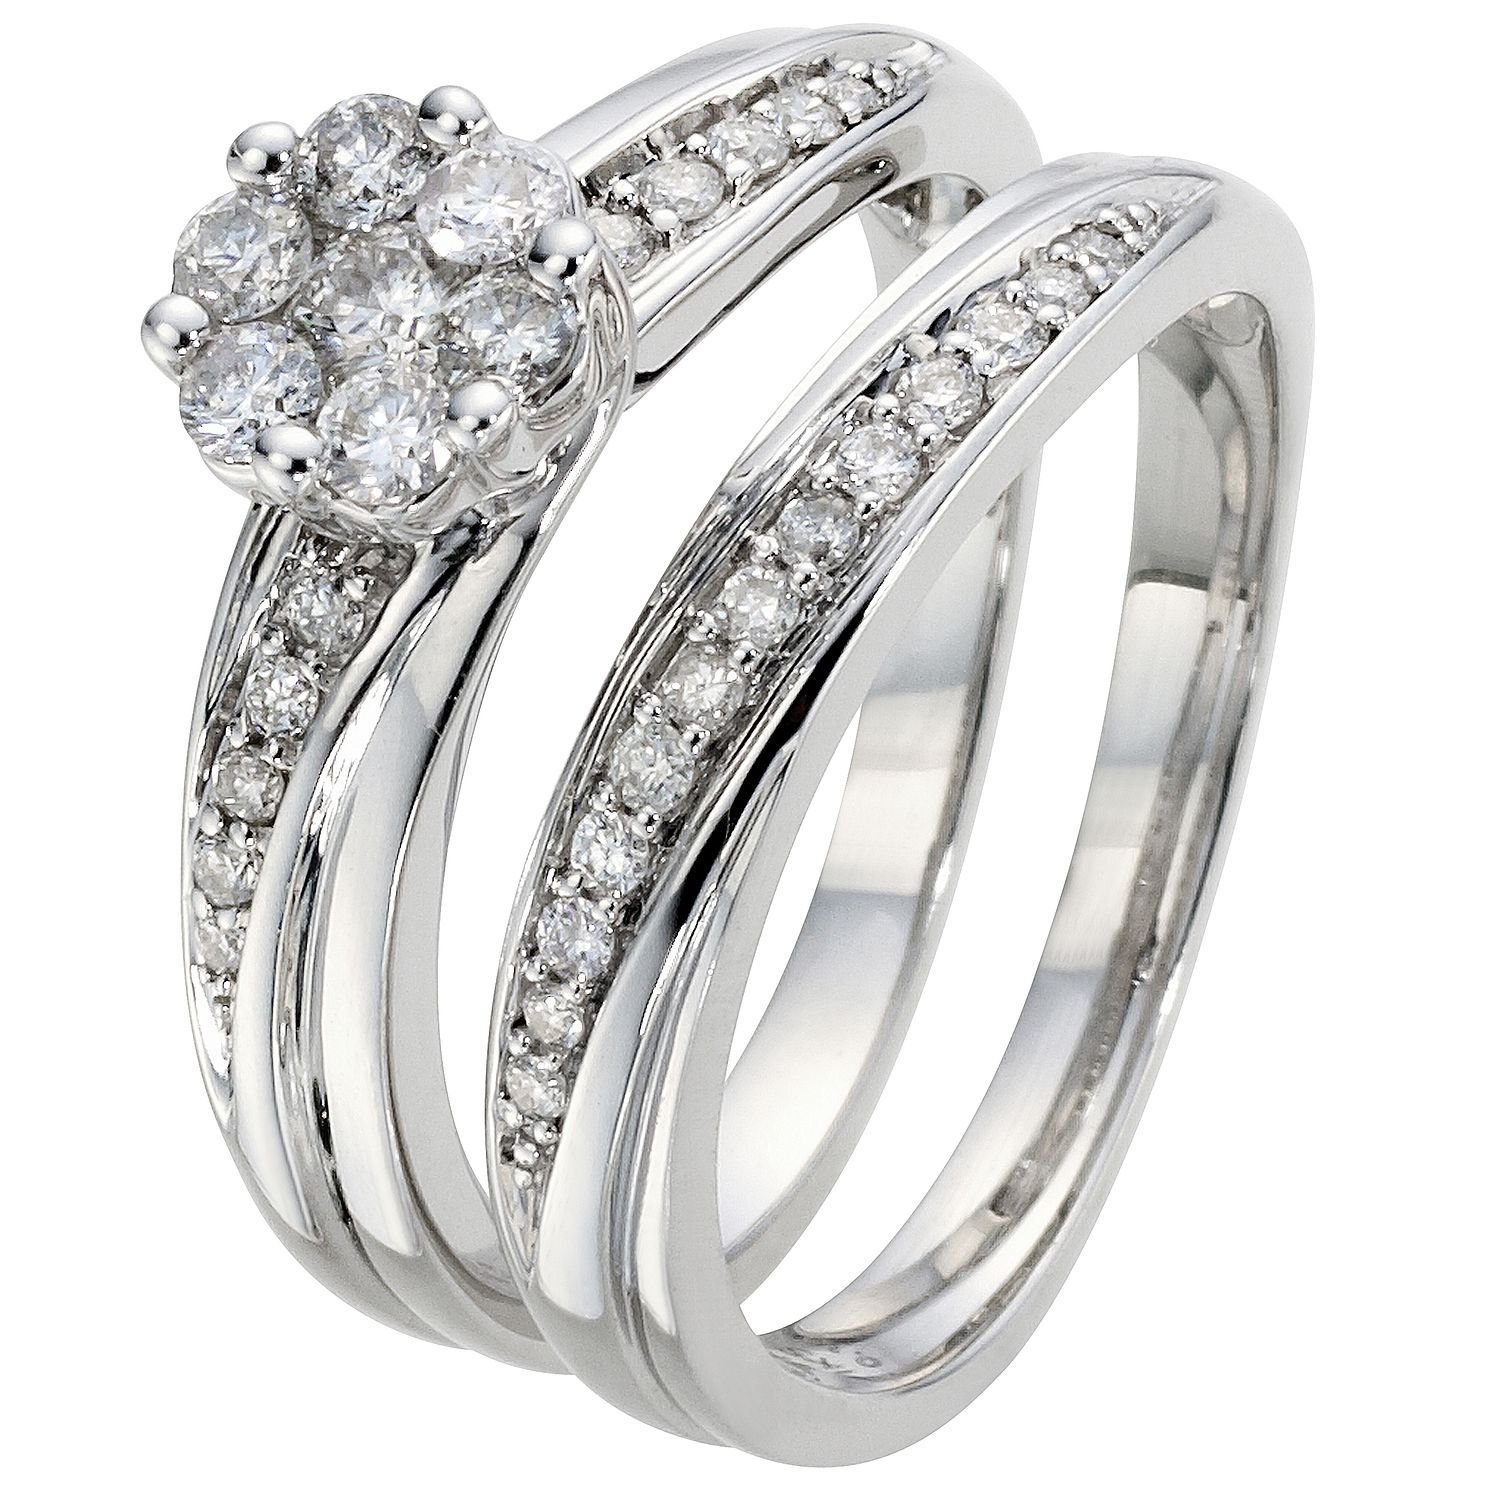 Perfect Fit 18ct White Gold 1/2ct Diamond Bridal Set - Product number 5258391